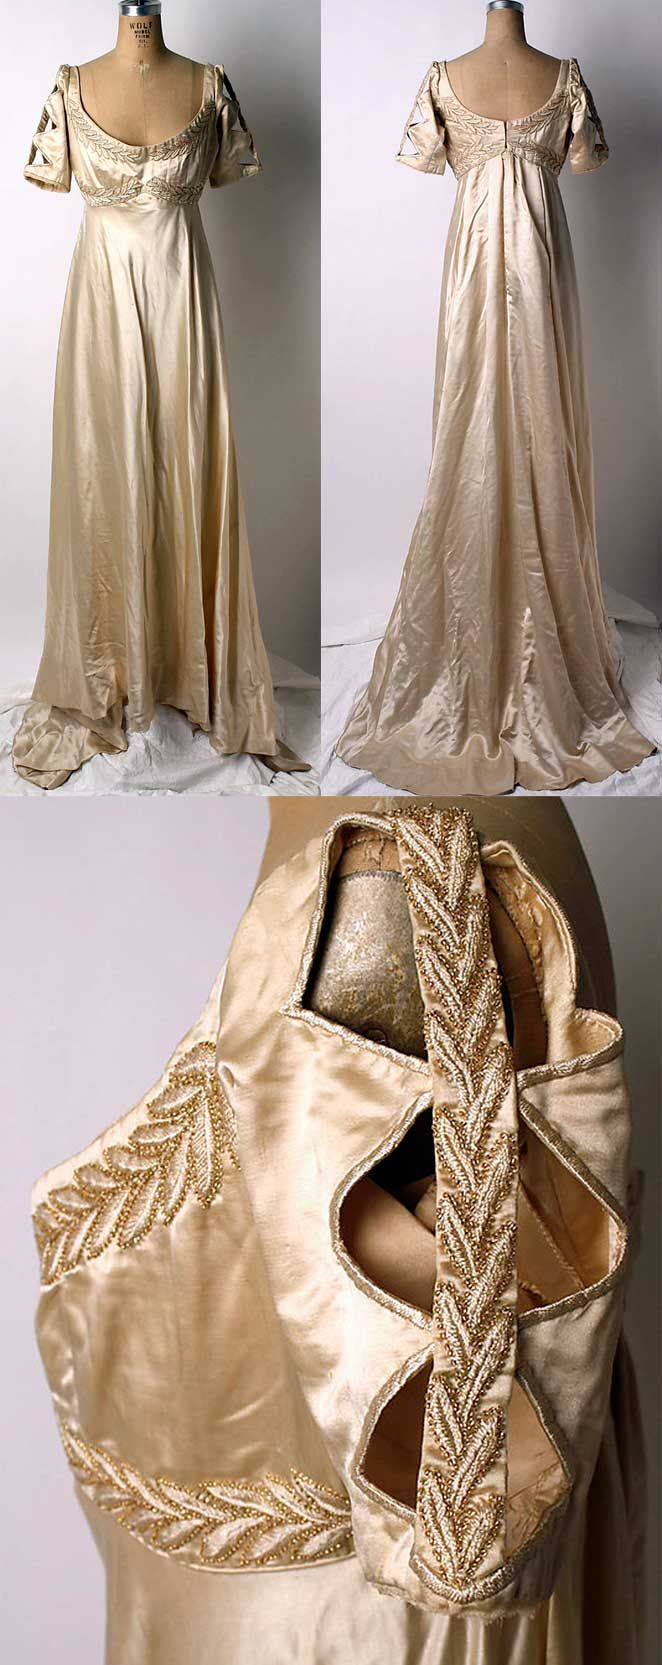 Old wedding shadowhunters dress                              …